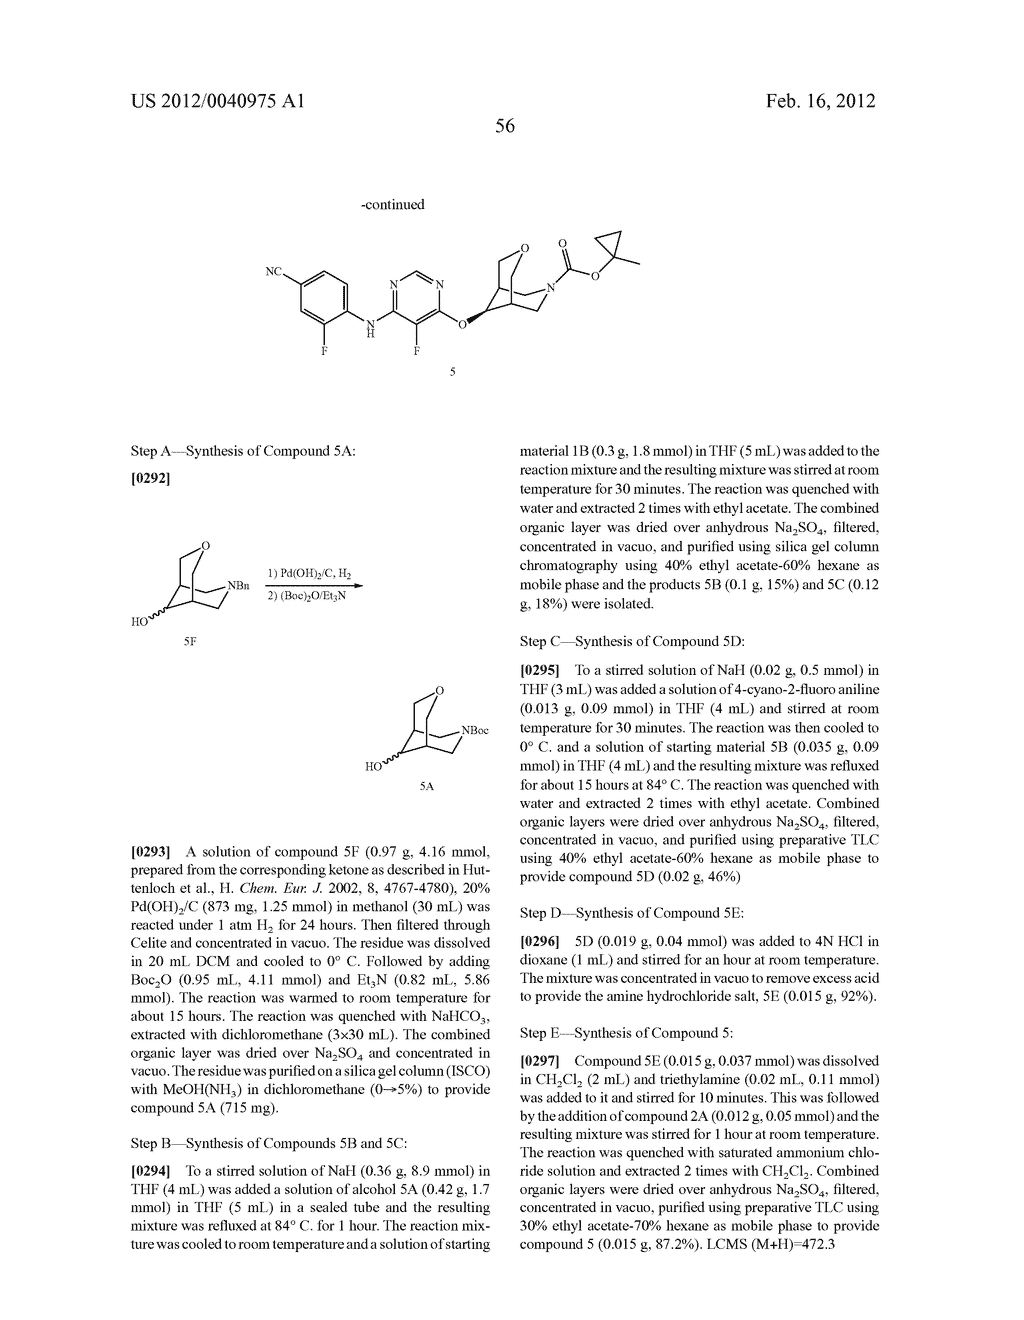 BRIDGED BICYCLIC HETEROCYCLE DERIVATIVES AND METHODS OF USE THEREOF - diagram, schematic, and image 57